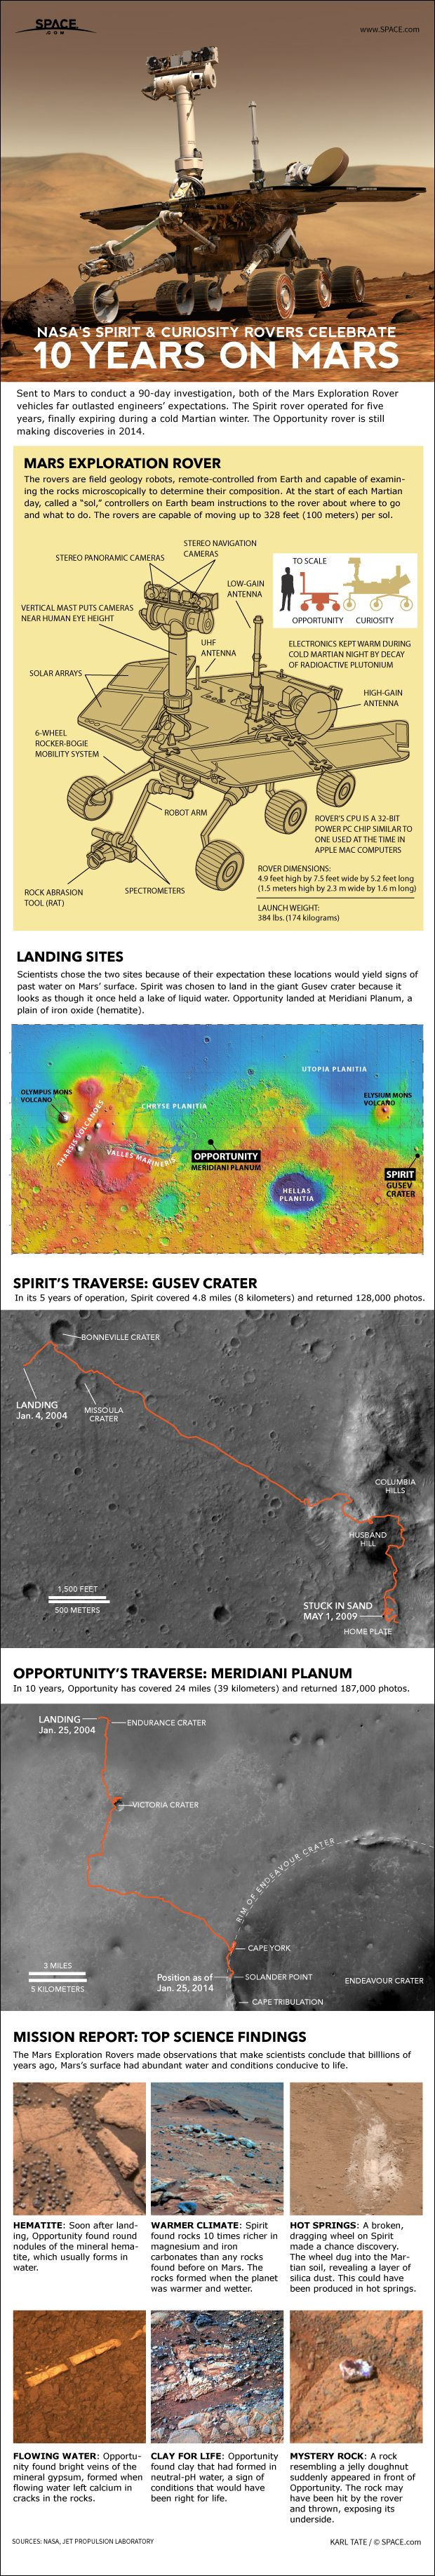 NASA's Opportunity rover marks 10 years of Mars exploration today (Jan. 24), an extraordinary milestone that adds to the robot's growing legend.